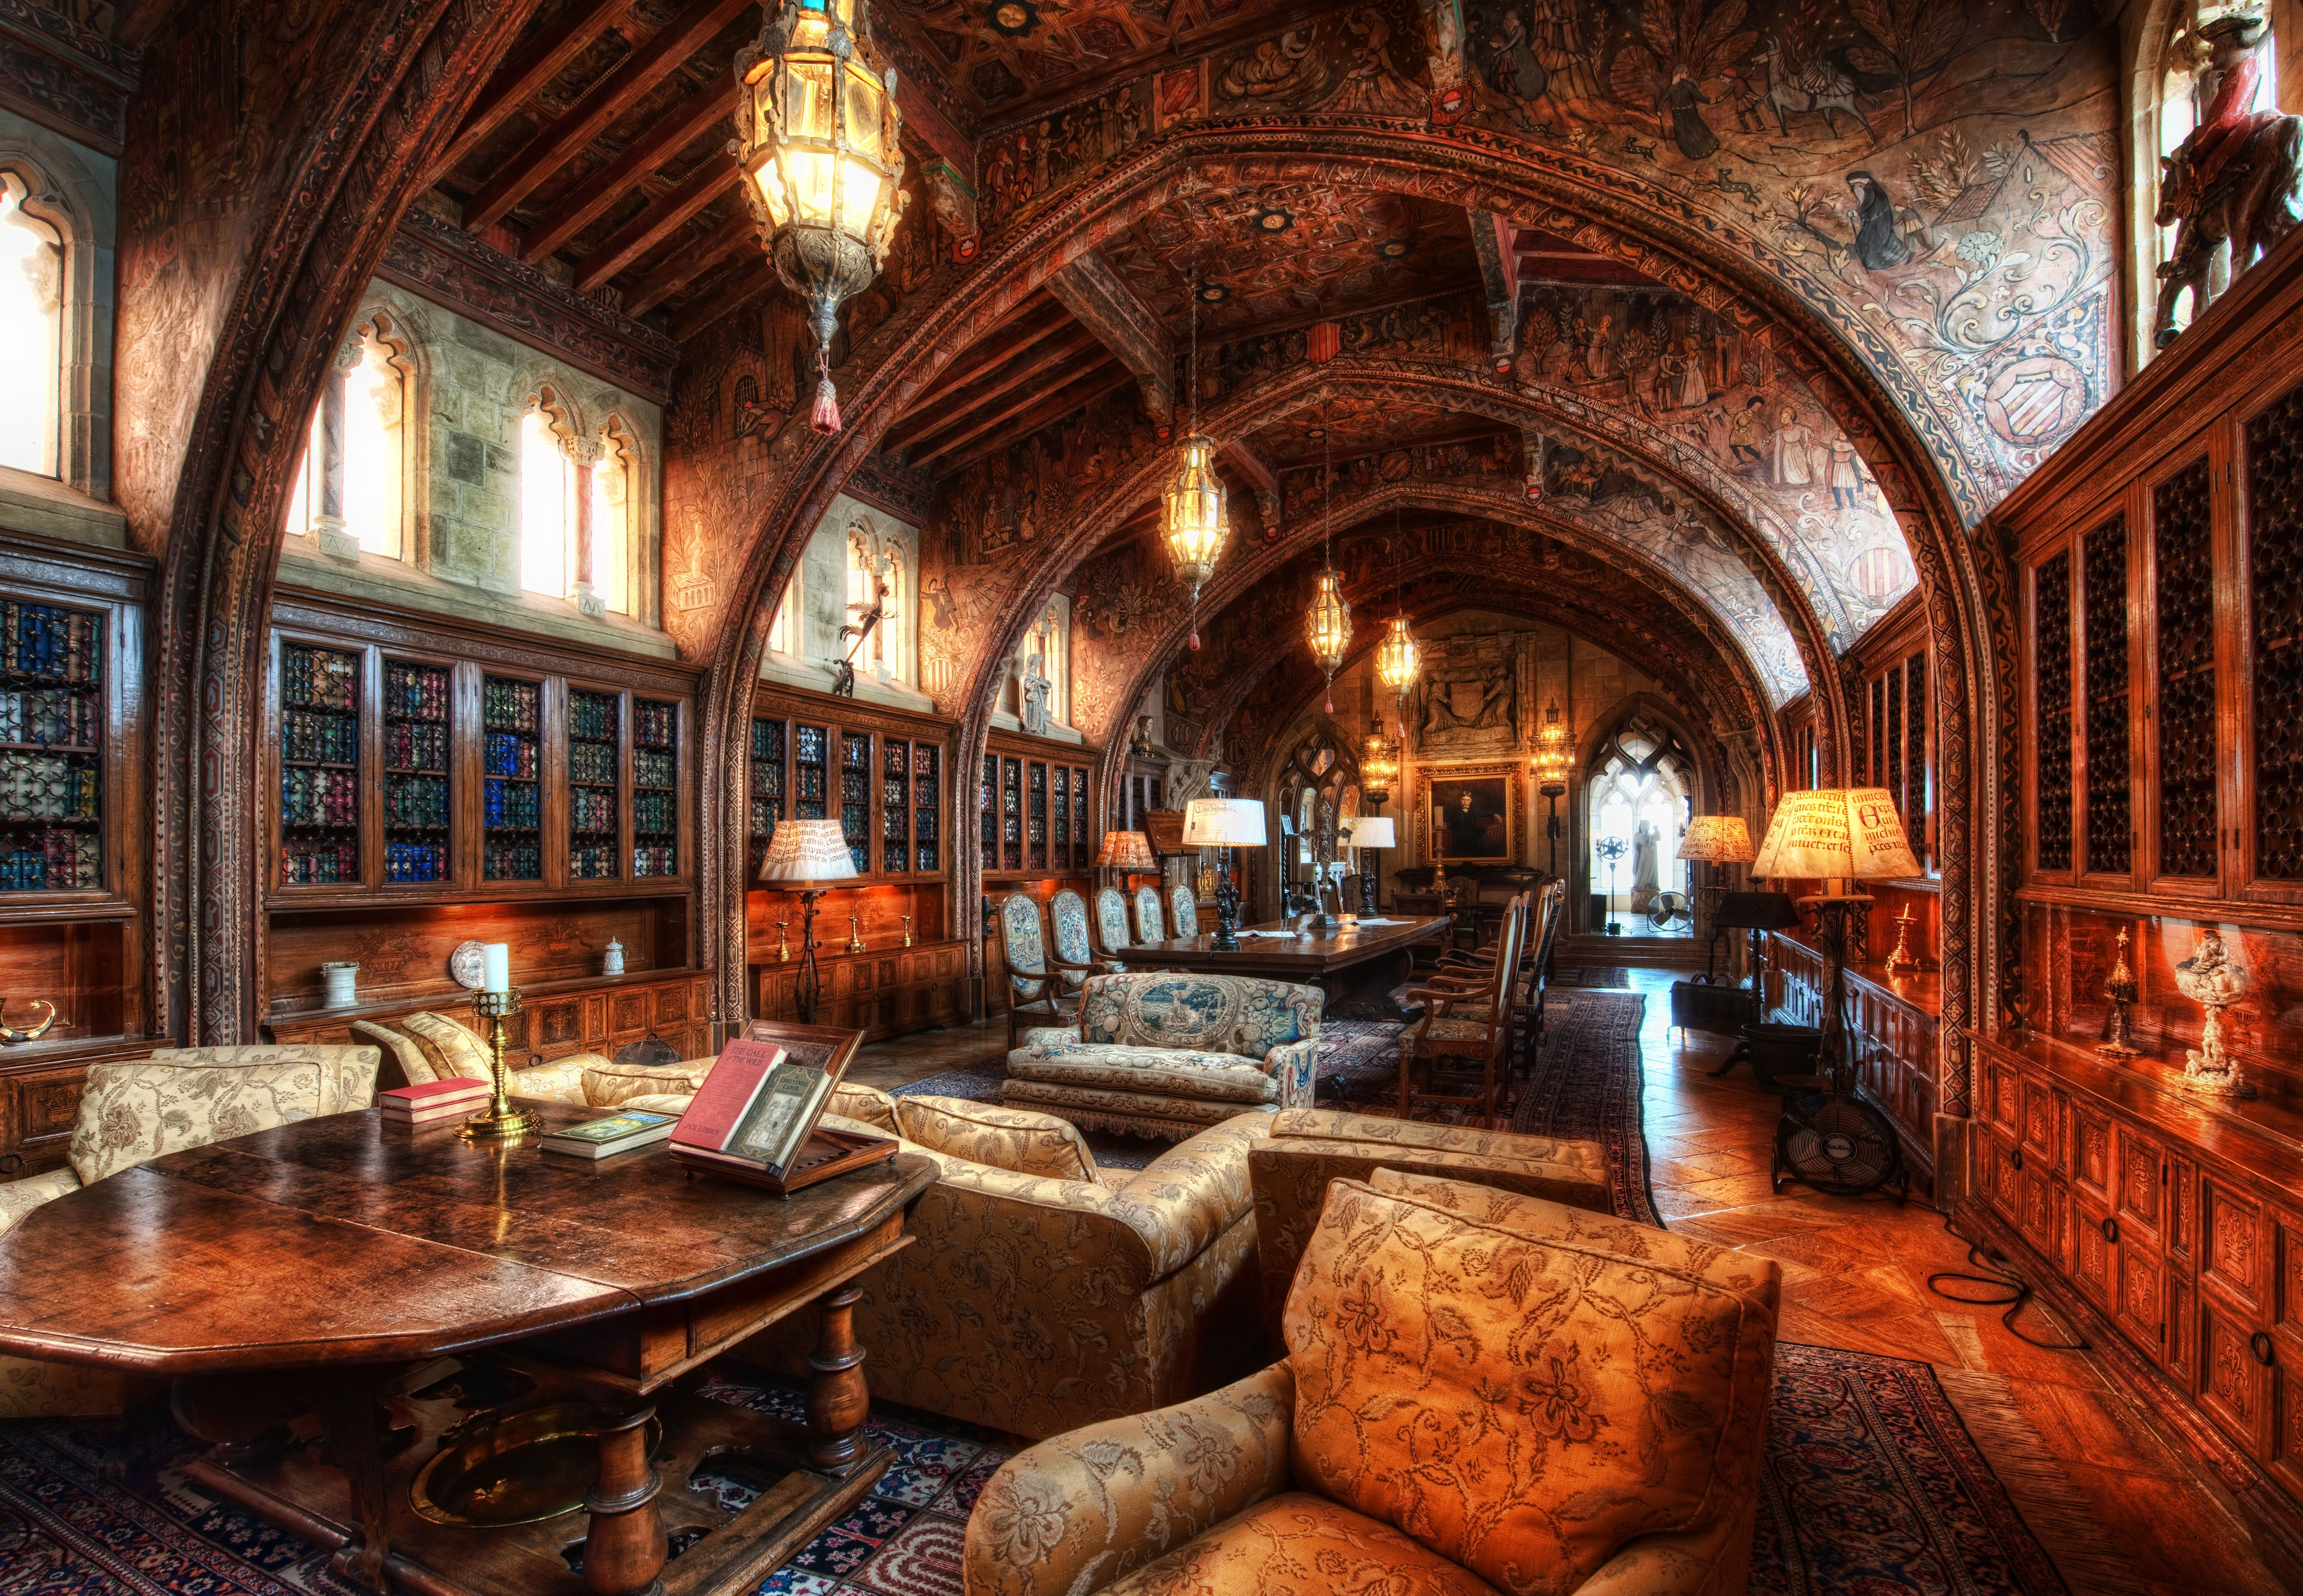 All sizes | The Gothic Study - The Private Library of William ...